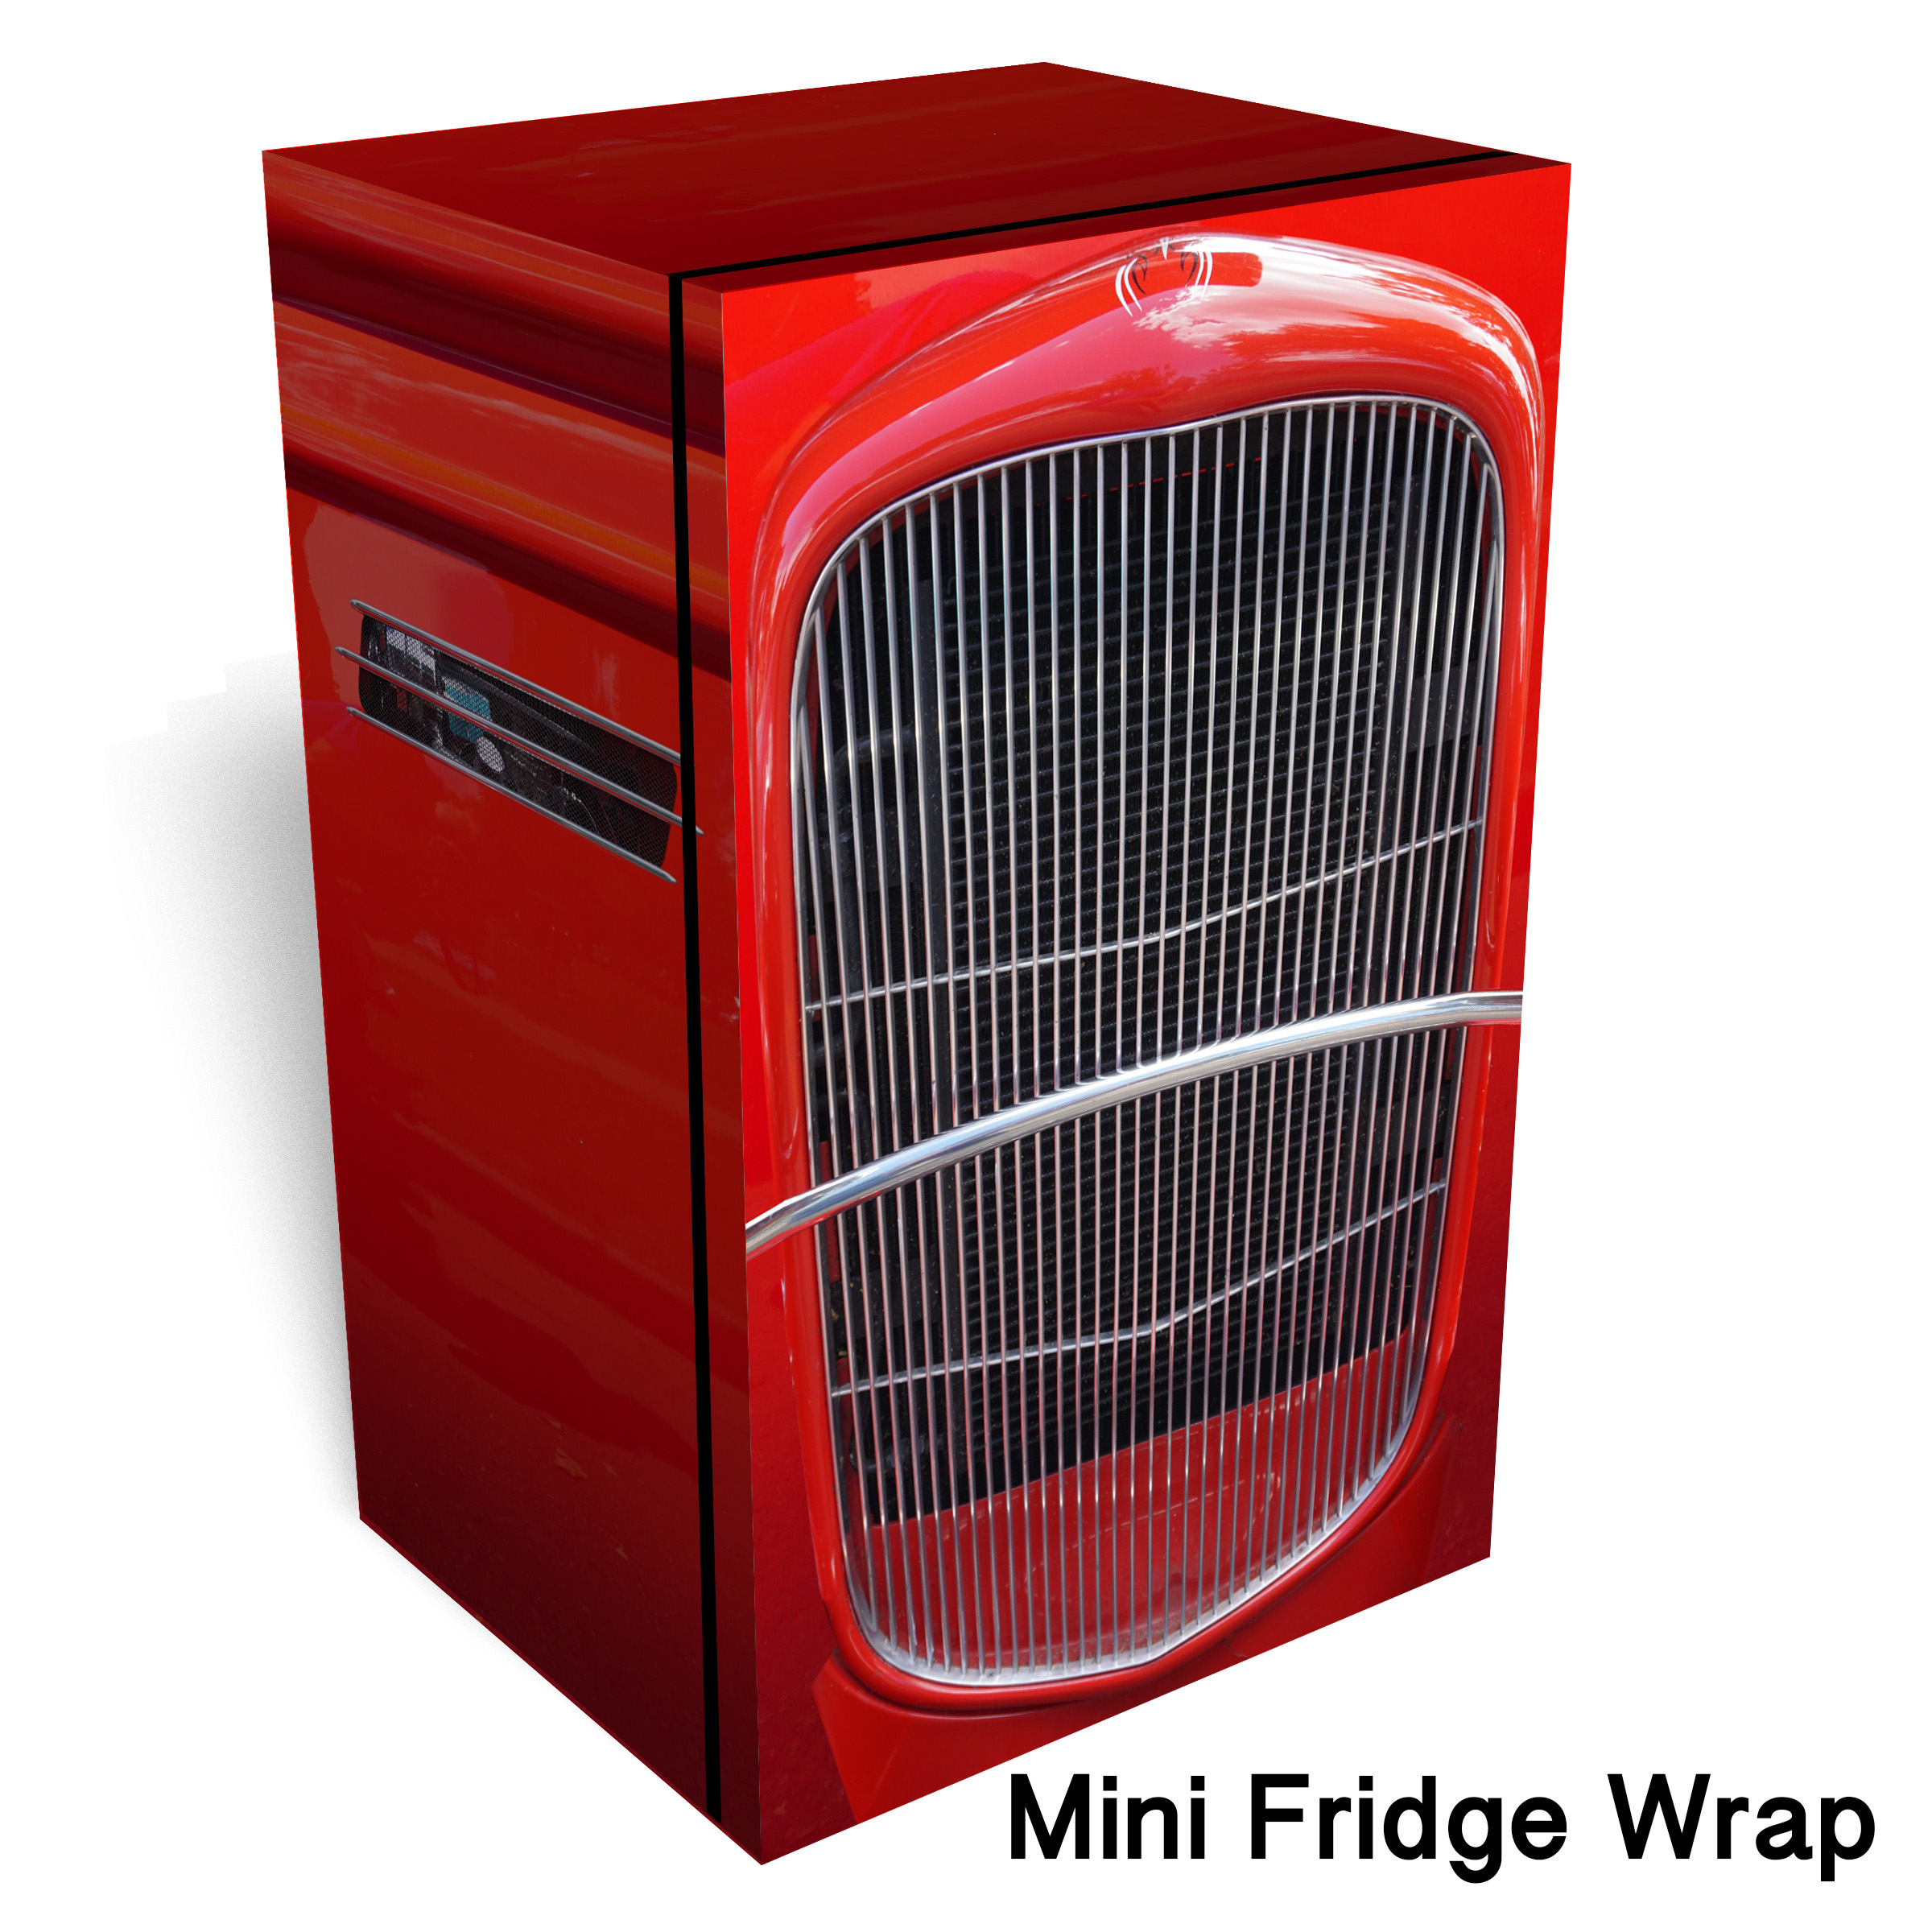 Hot Rod Red 2 Mini Fridge Wrap